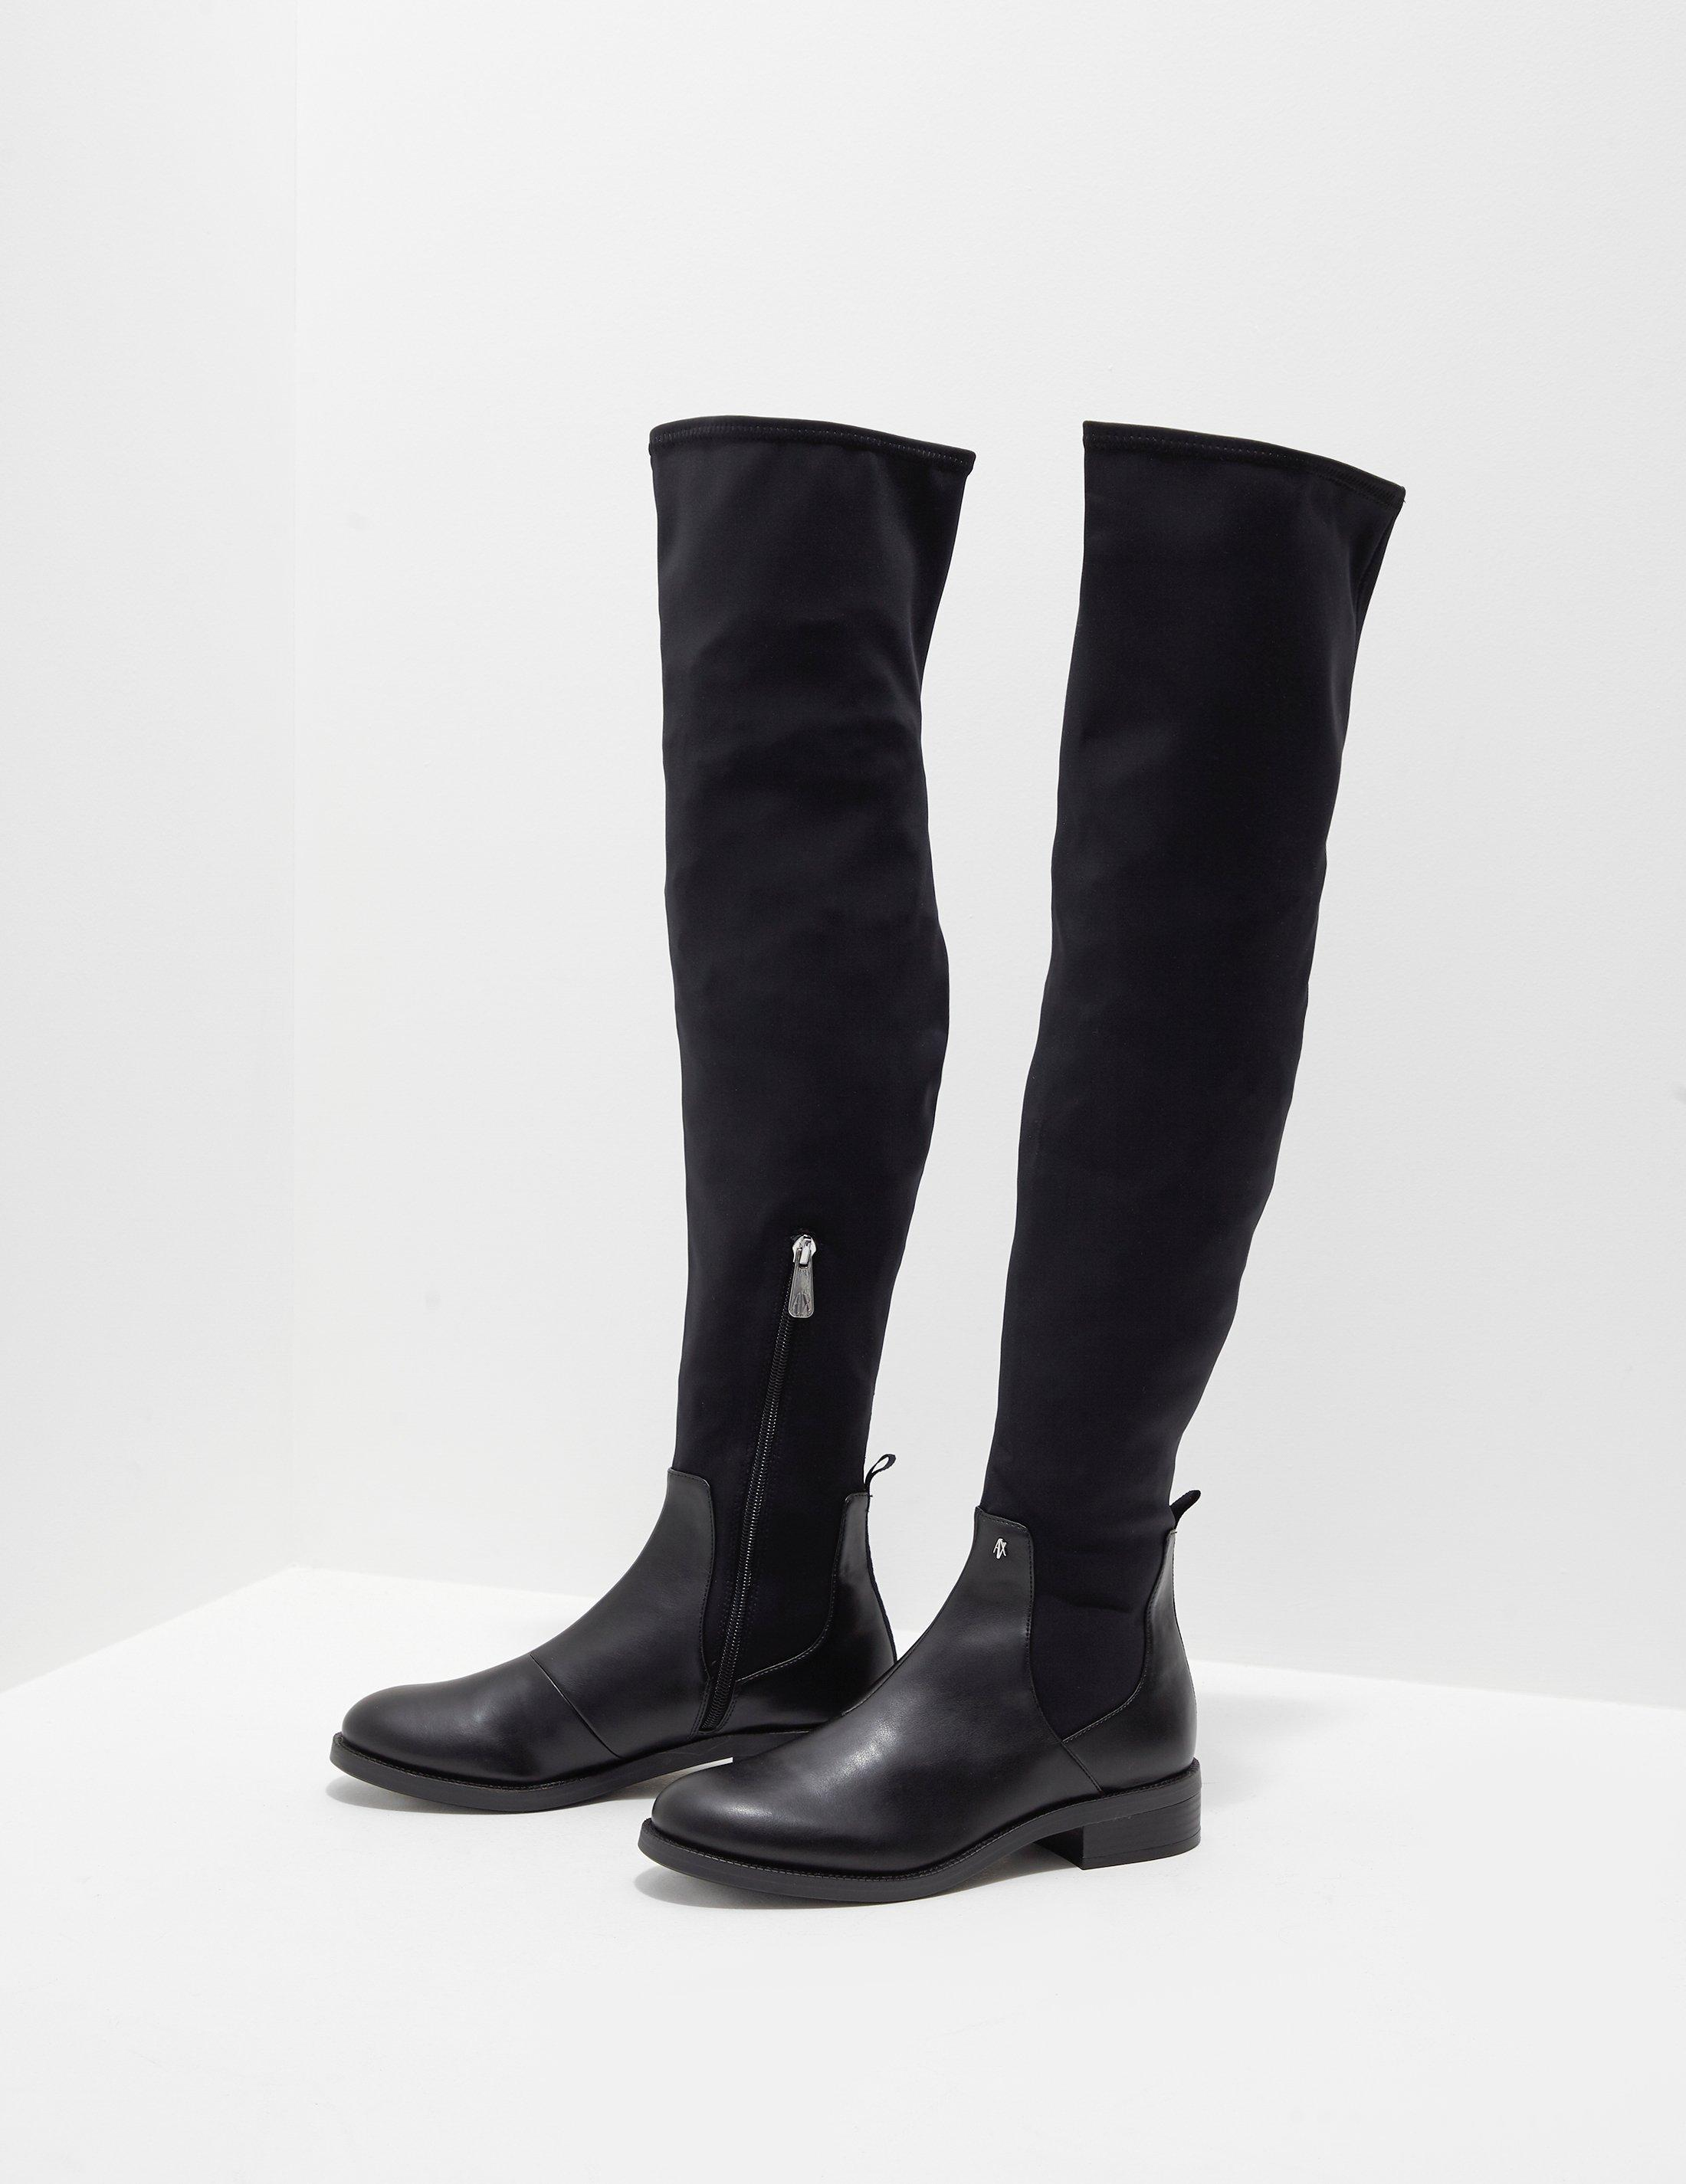 127183acb855 Lyst - Armani Exchange Neoprene Knee High Boots Black in Black